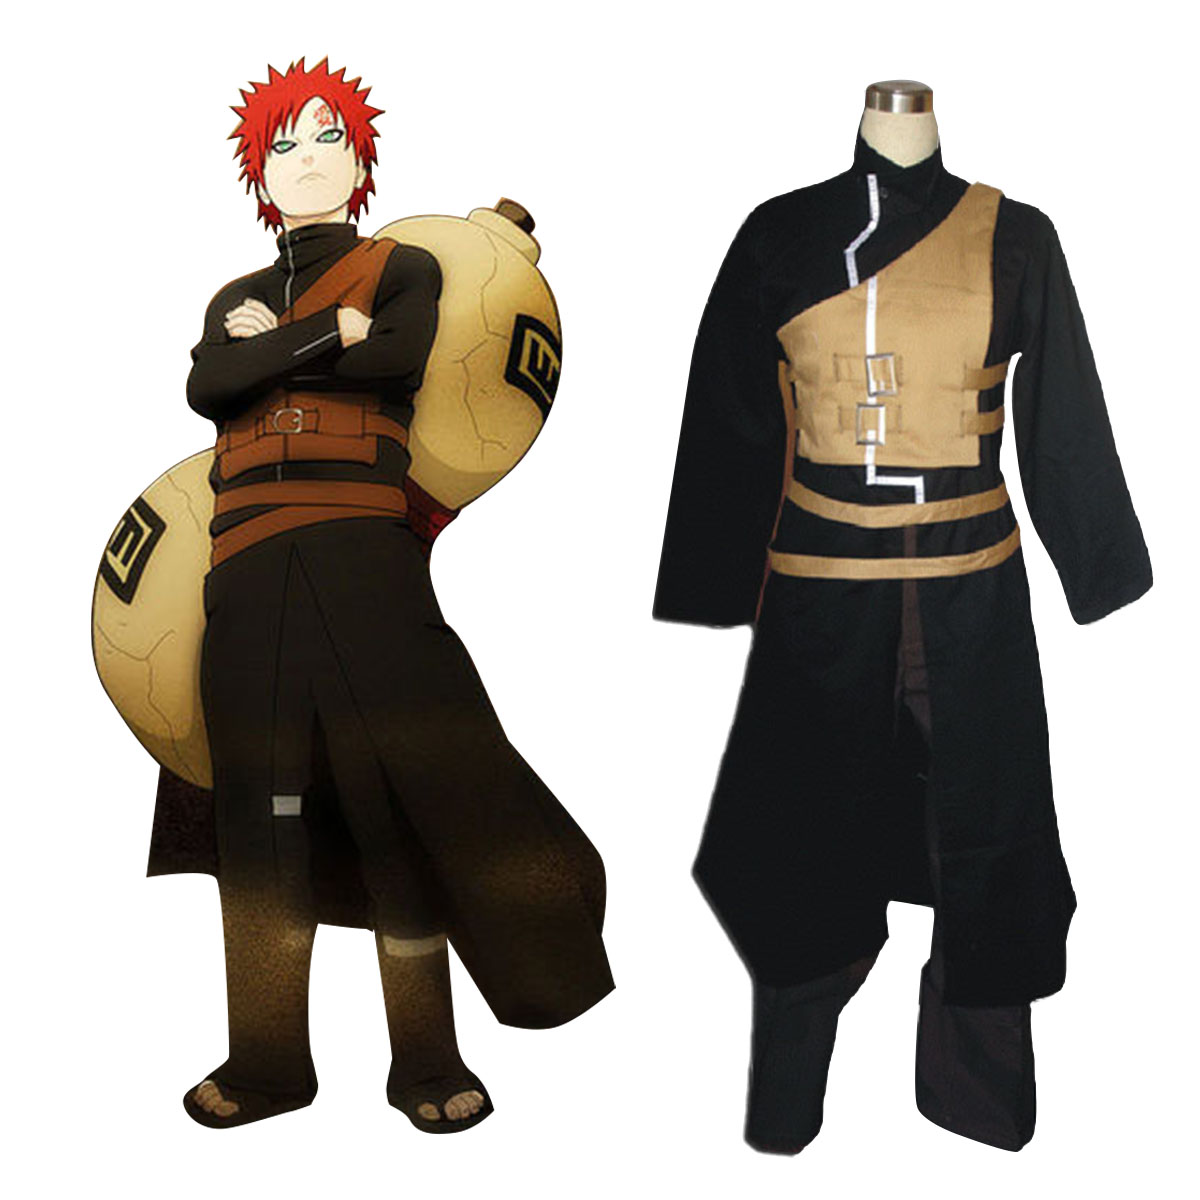 Naruto Shippuden Gaara 2 Anime Cosplay Costumes Outfit